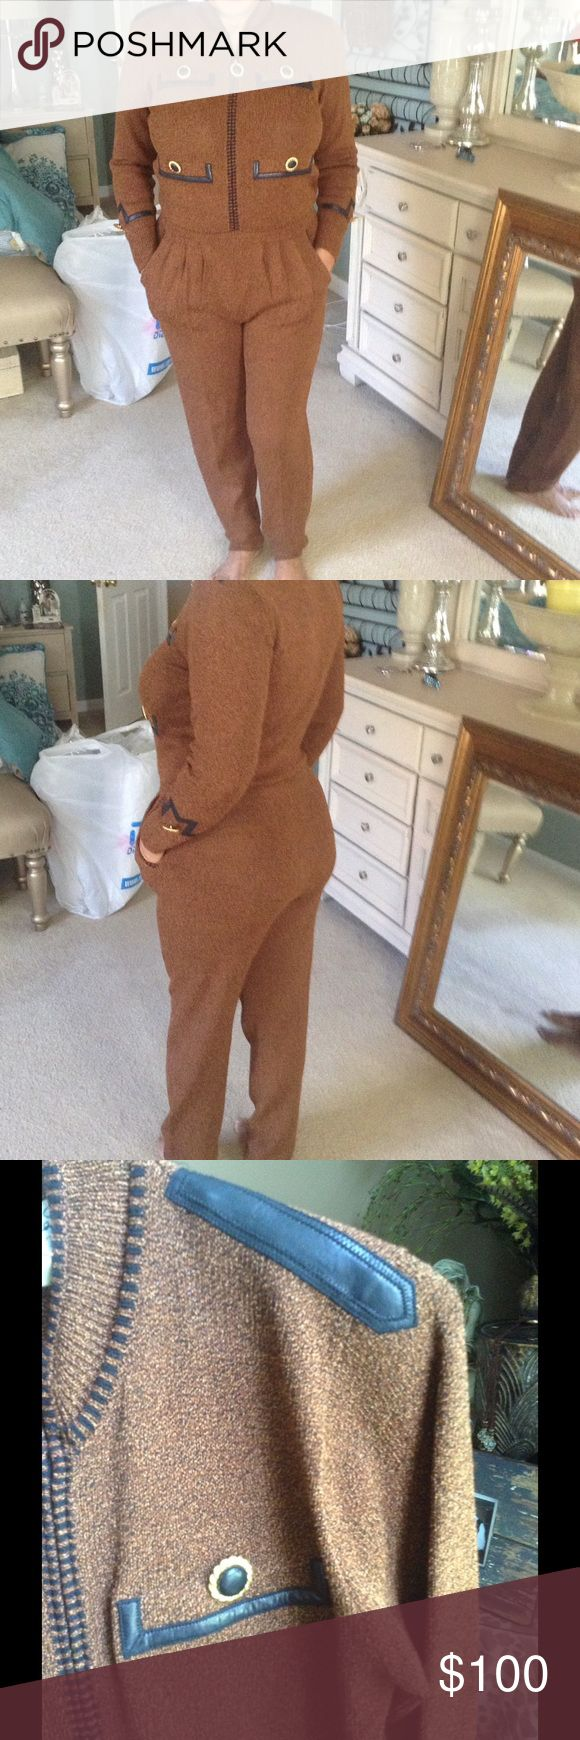 "NEW LISTING gorgeous 1980's ANTONELLA  PREVE NY The perfect FALL / WINTER jumpsuit knitted with real leather trim details two functional pockets very stretchy and very warm 28"" at the waist but stretches 13"" from the shoulder to the waist and 15"" from the waist to the bottom of the pants 40"" at the bust area 30""inseam this is a vintage piece ANTONELLA PREVE new york  Pants Jumpsuits & Rompers"